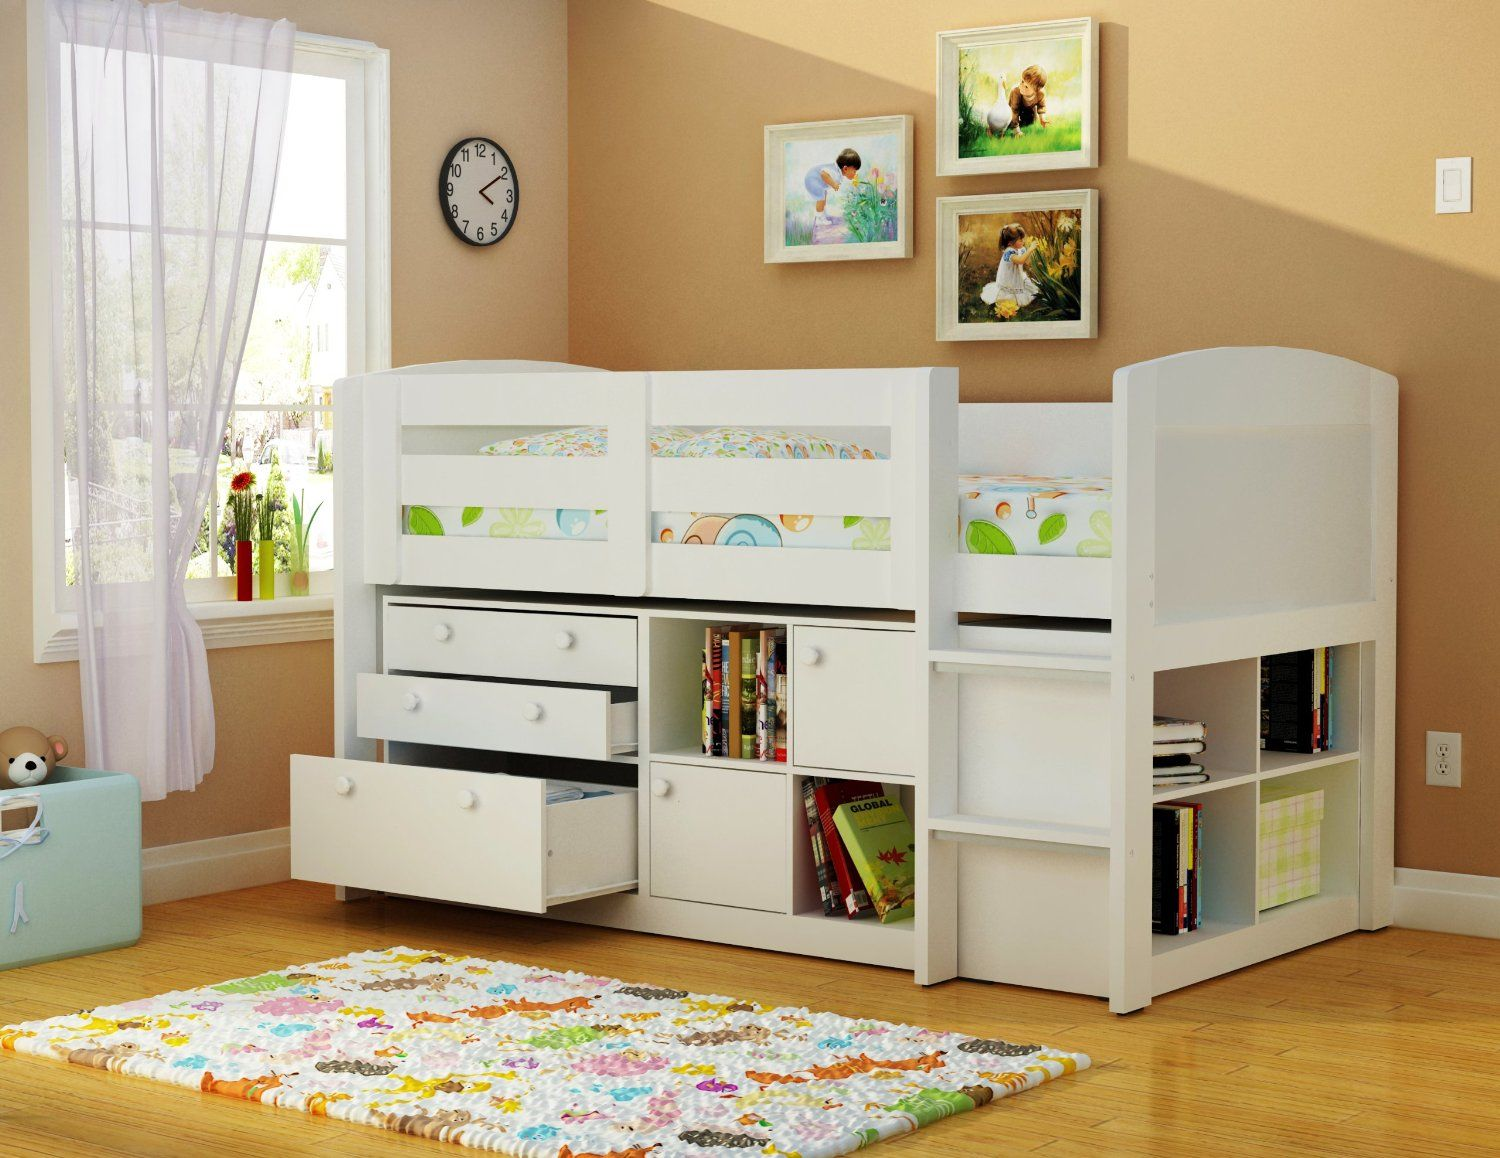 Maxtrix Great Storage Low Loft Bed With Stairs Twin Size White Low Loft Beds Perfect Model And Lofts